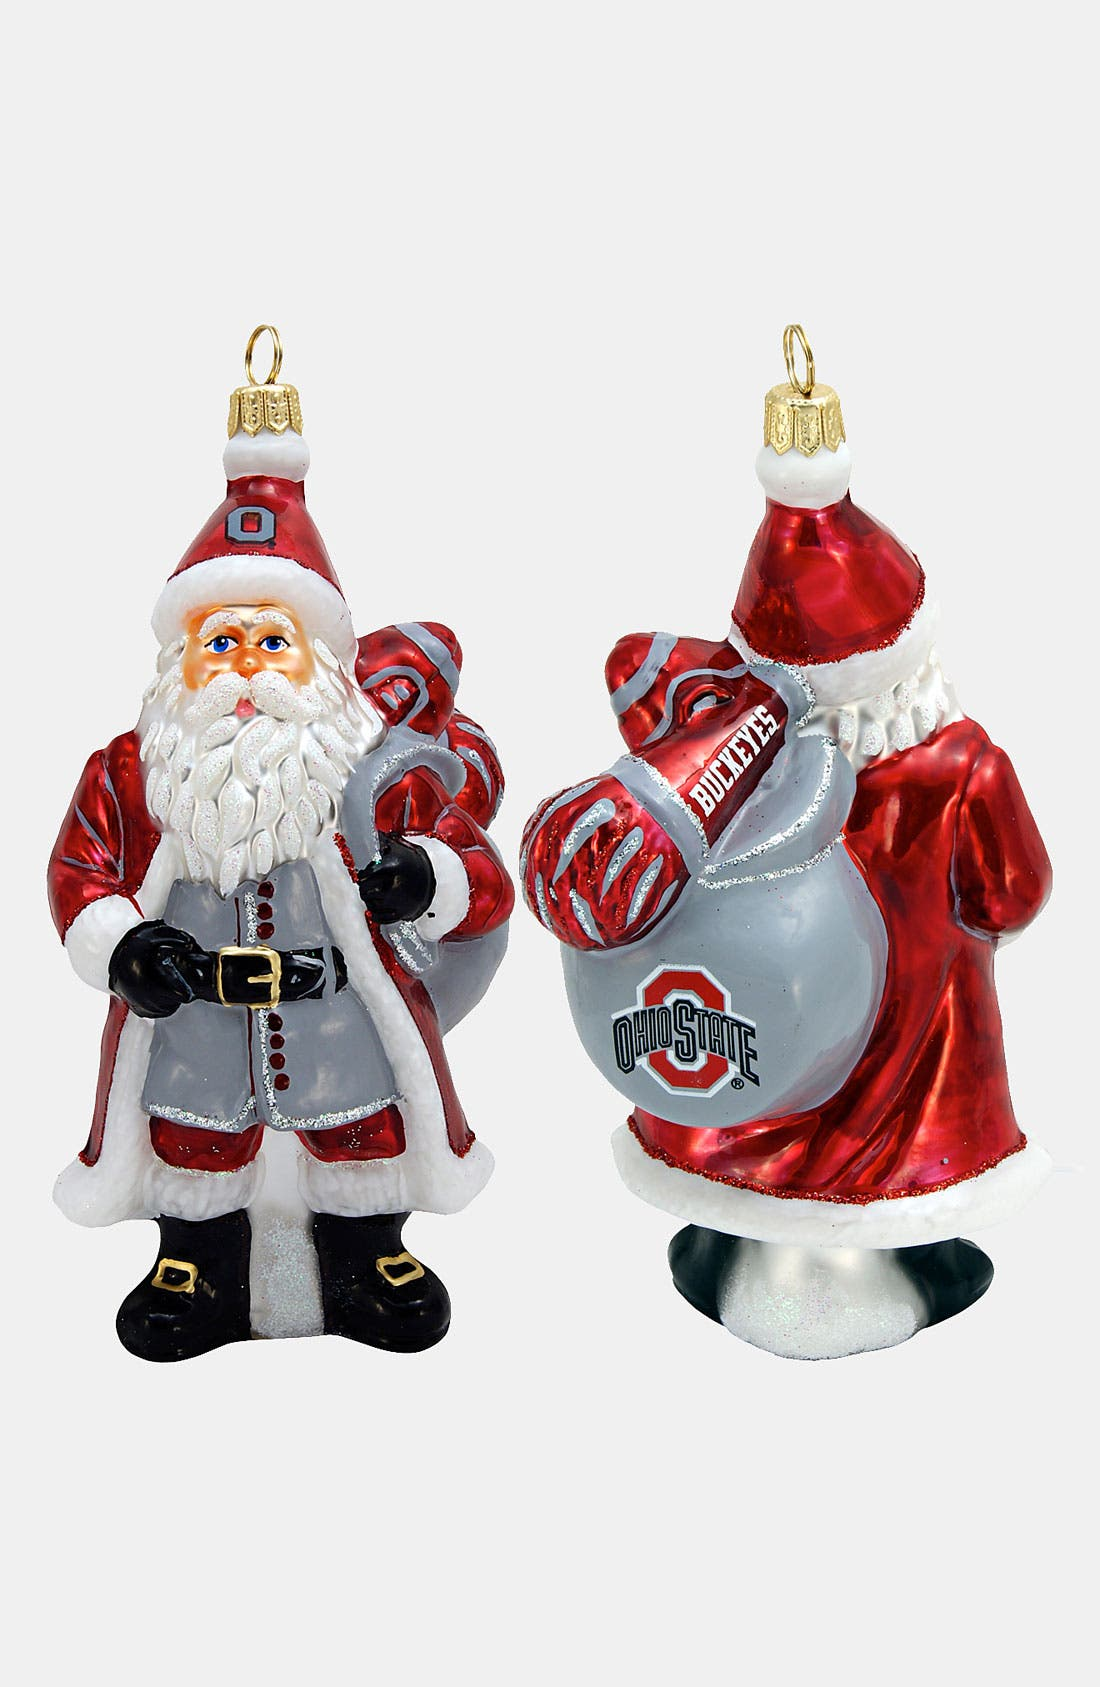 Alternate Image 1 Selected - Joy to the World Collectibles 'Ohio State Buckeyes Santa' Ornament